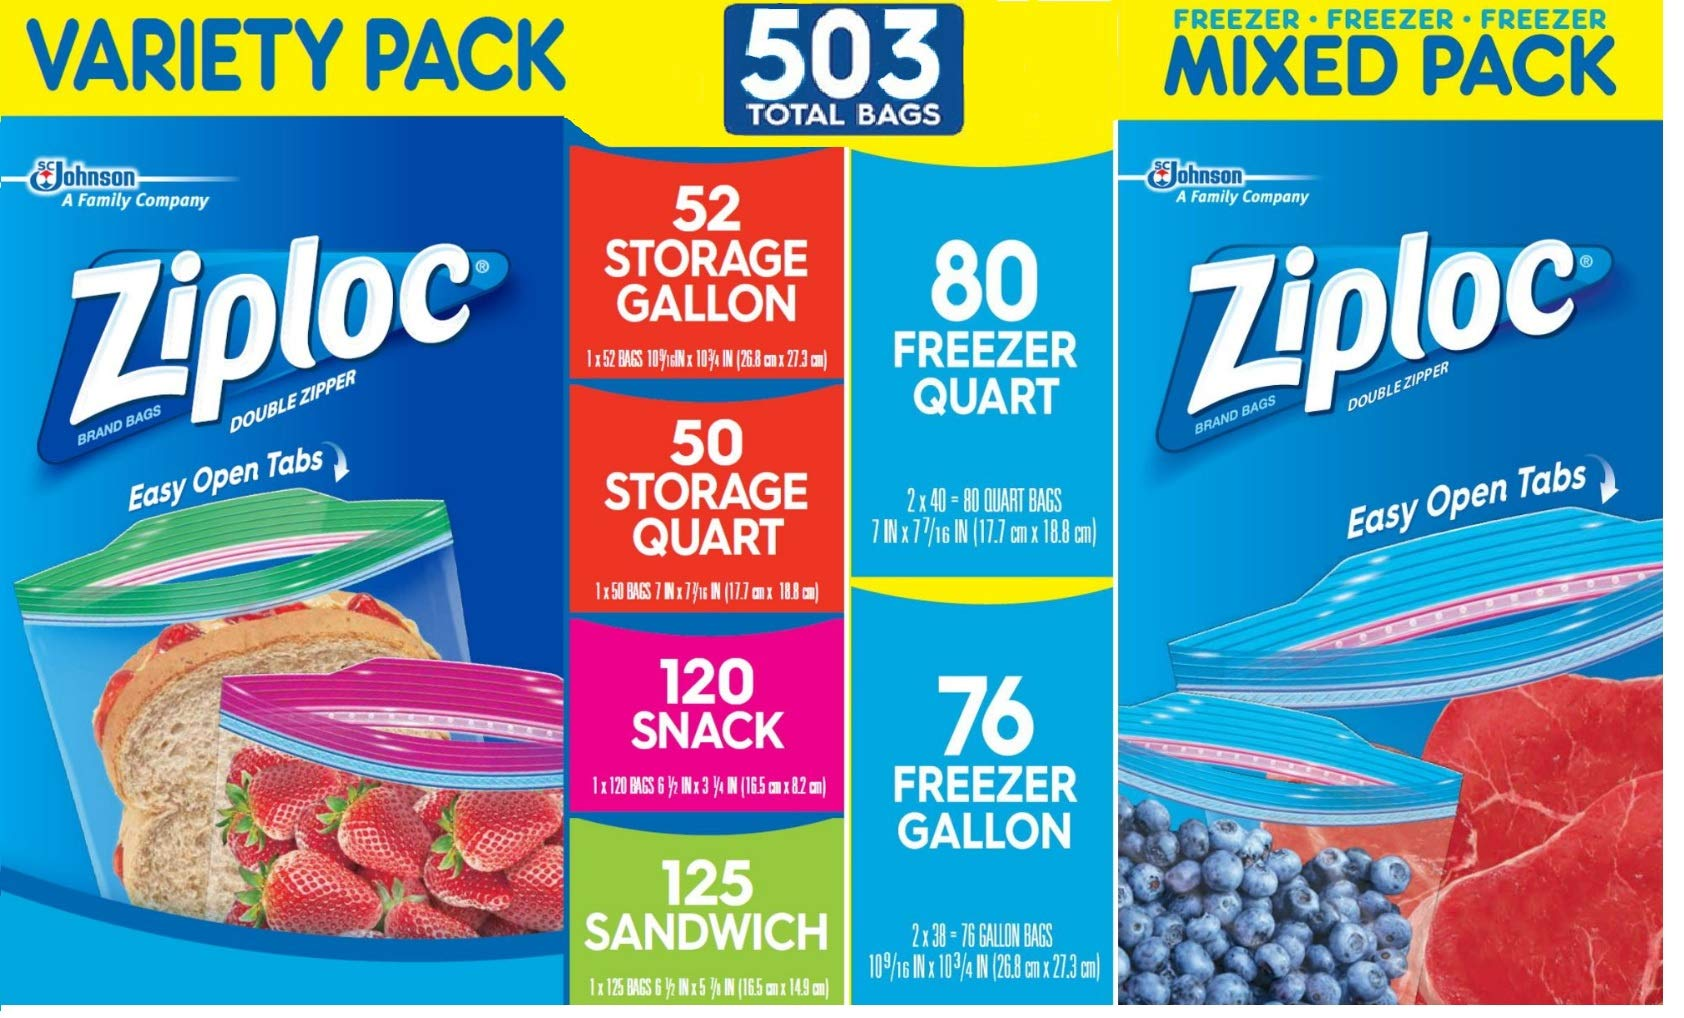 Ziploc Storage and Freezer Bags Ultimate Variety Bundle - 503 Total Bags - Freezer Gallon, Storage Gallon, Freezer Quart, Storage Quart, Sandwich and Snack Varieties